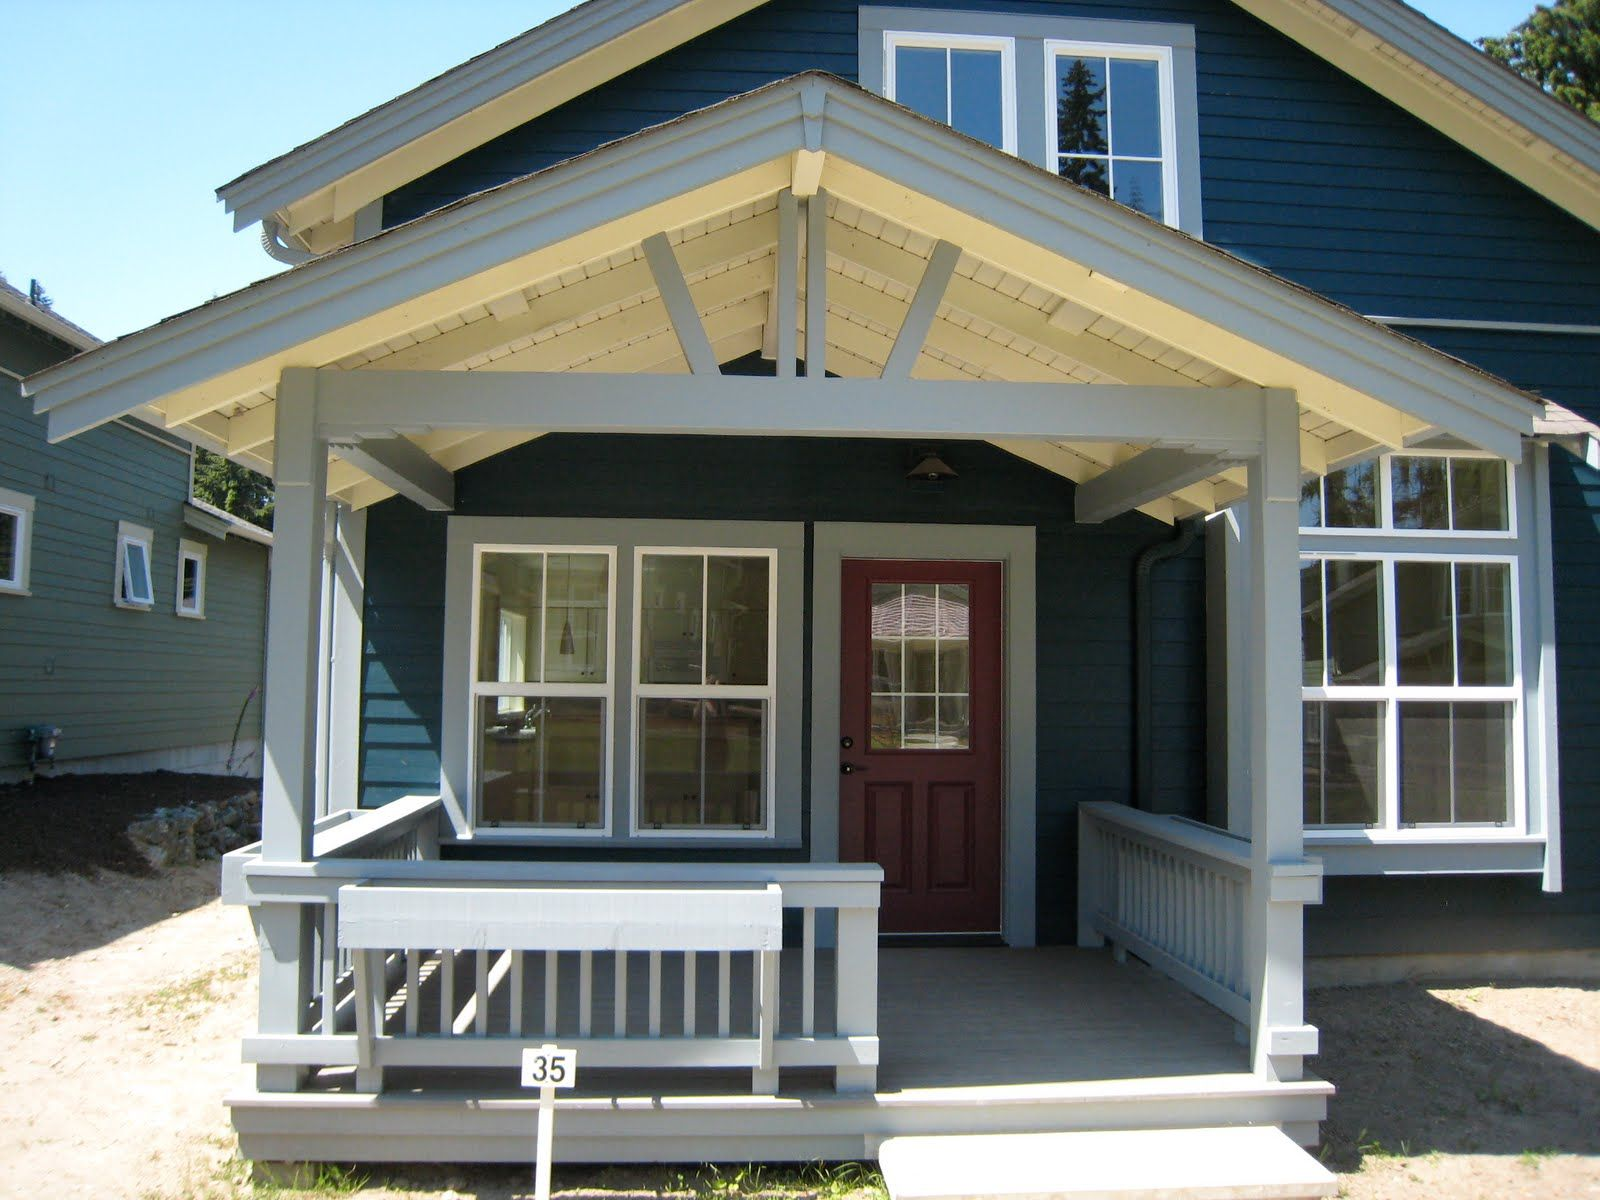 Porch Roof Ideas This Is The Same House With 2 Diffe Roofs